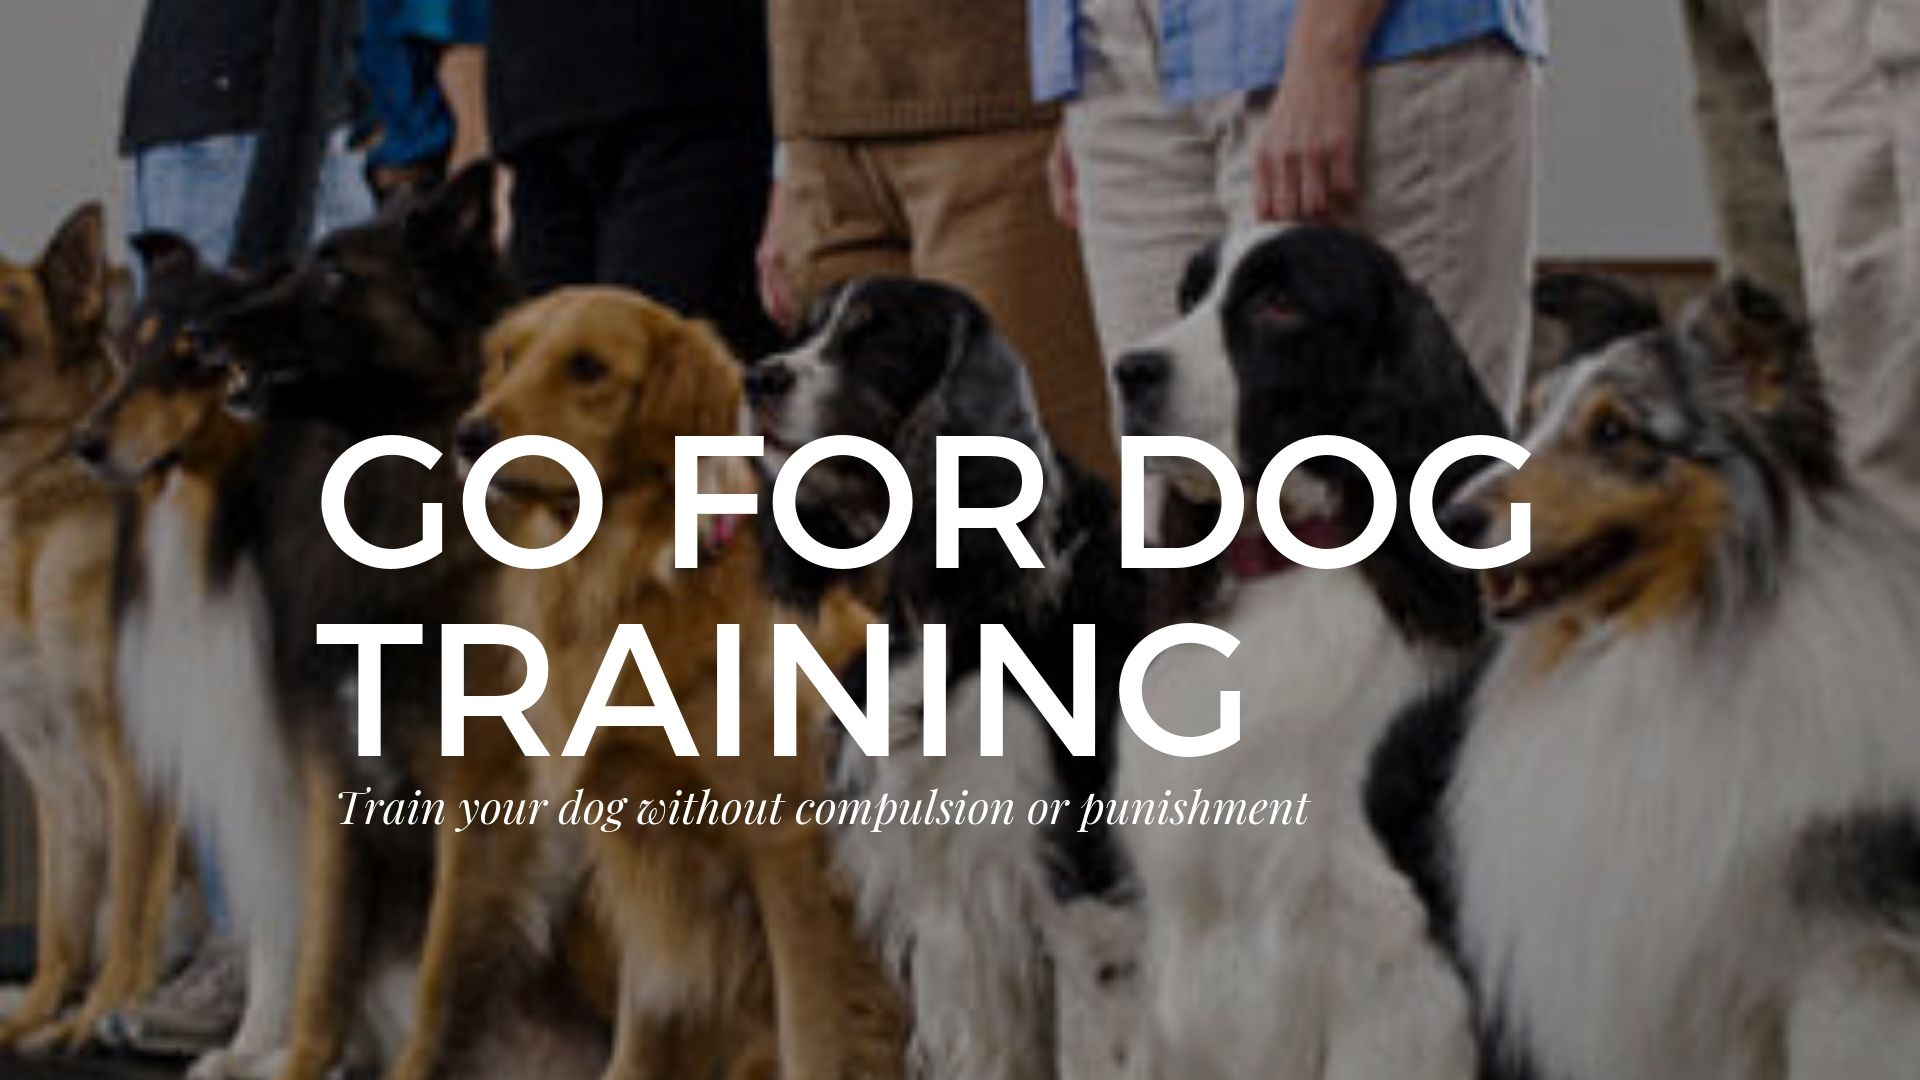 Sometimes It Can Be Difficult To Find A Good Dog Trainer That Is